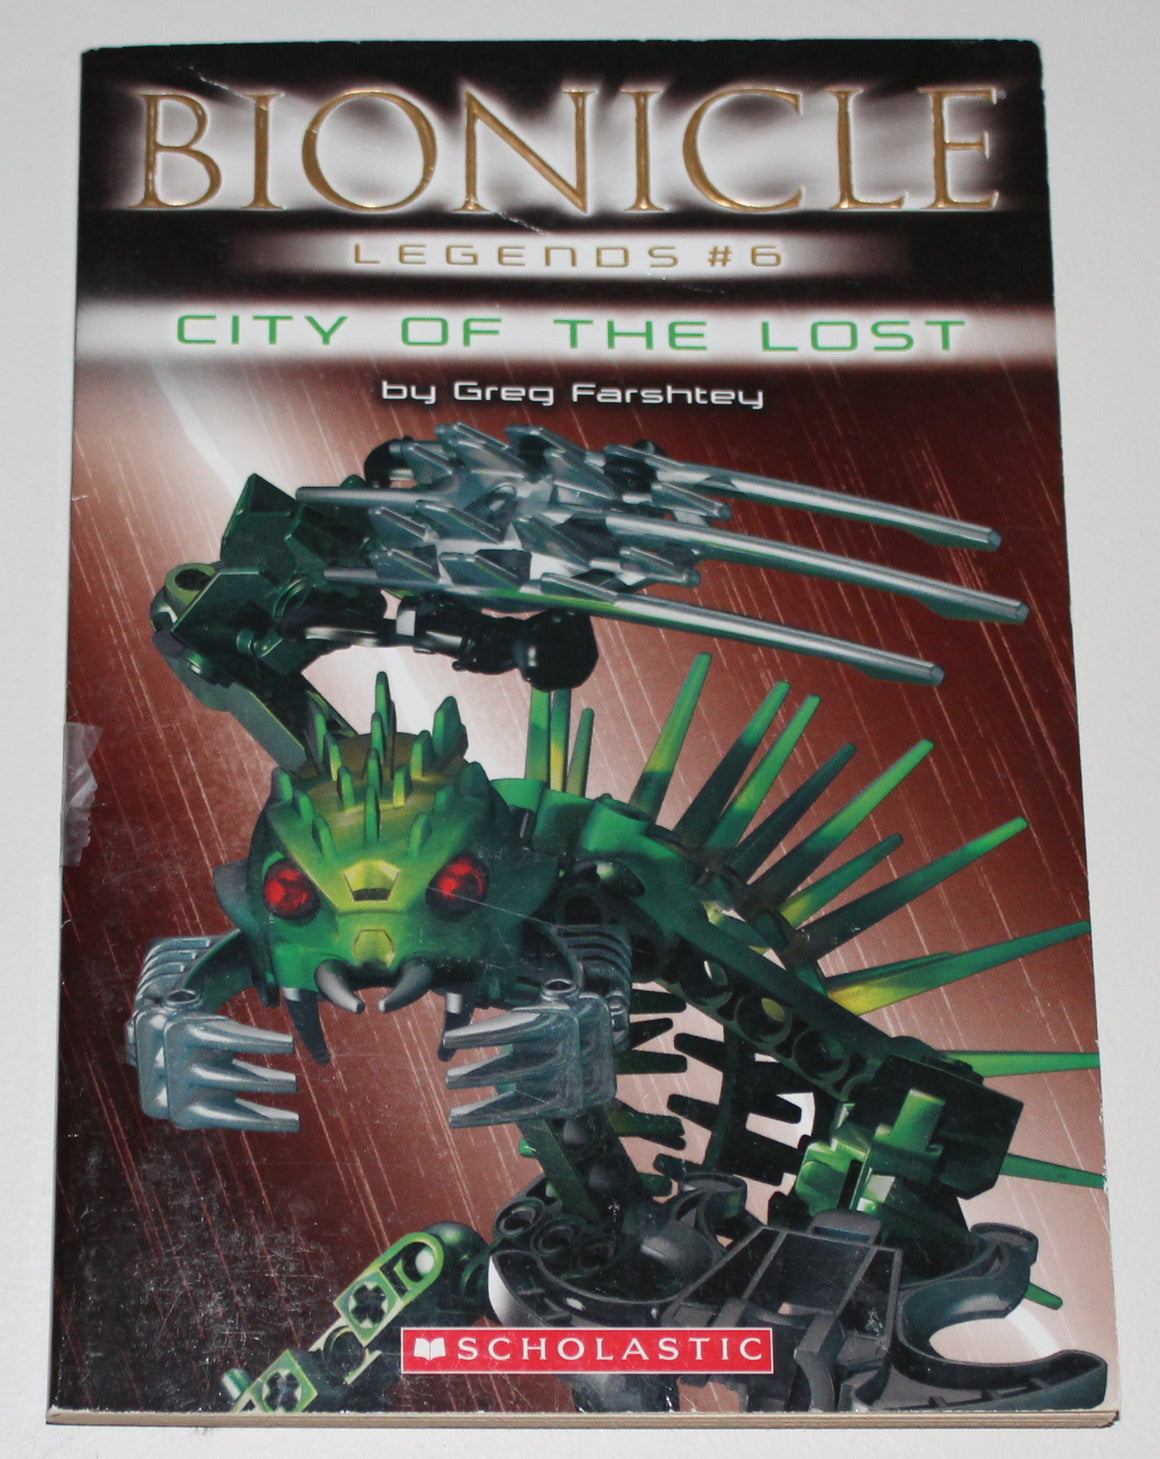 BIONICLE PAPERBACK BOOK